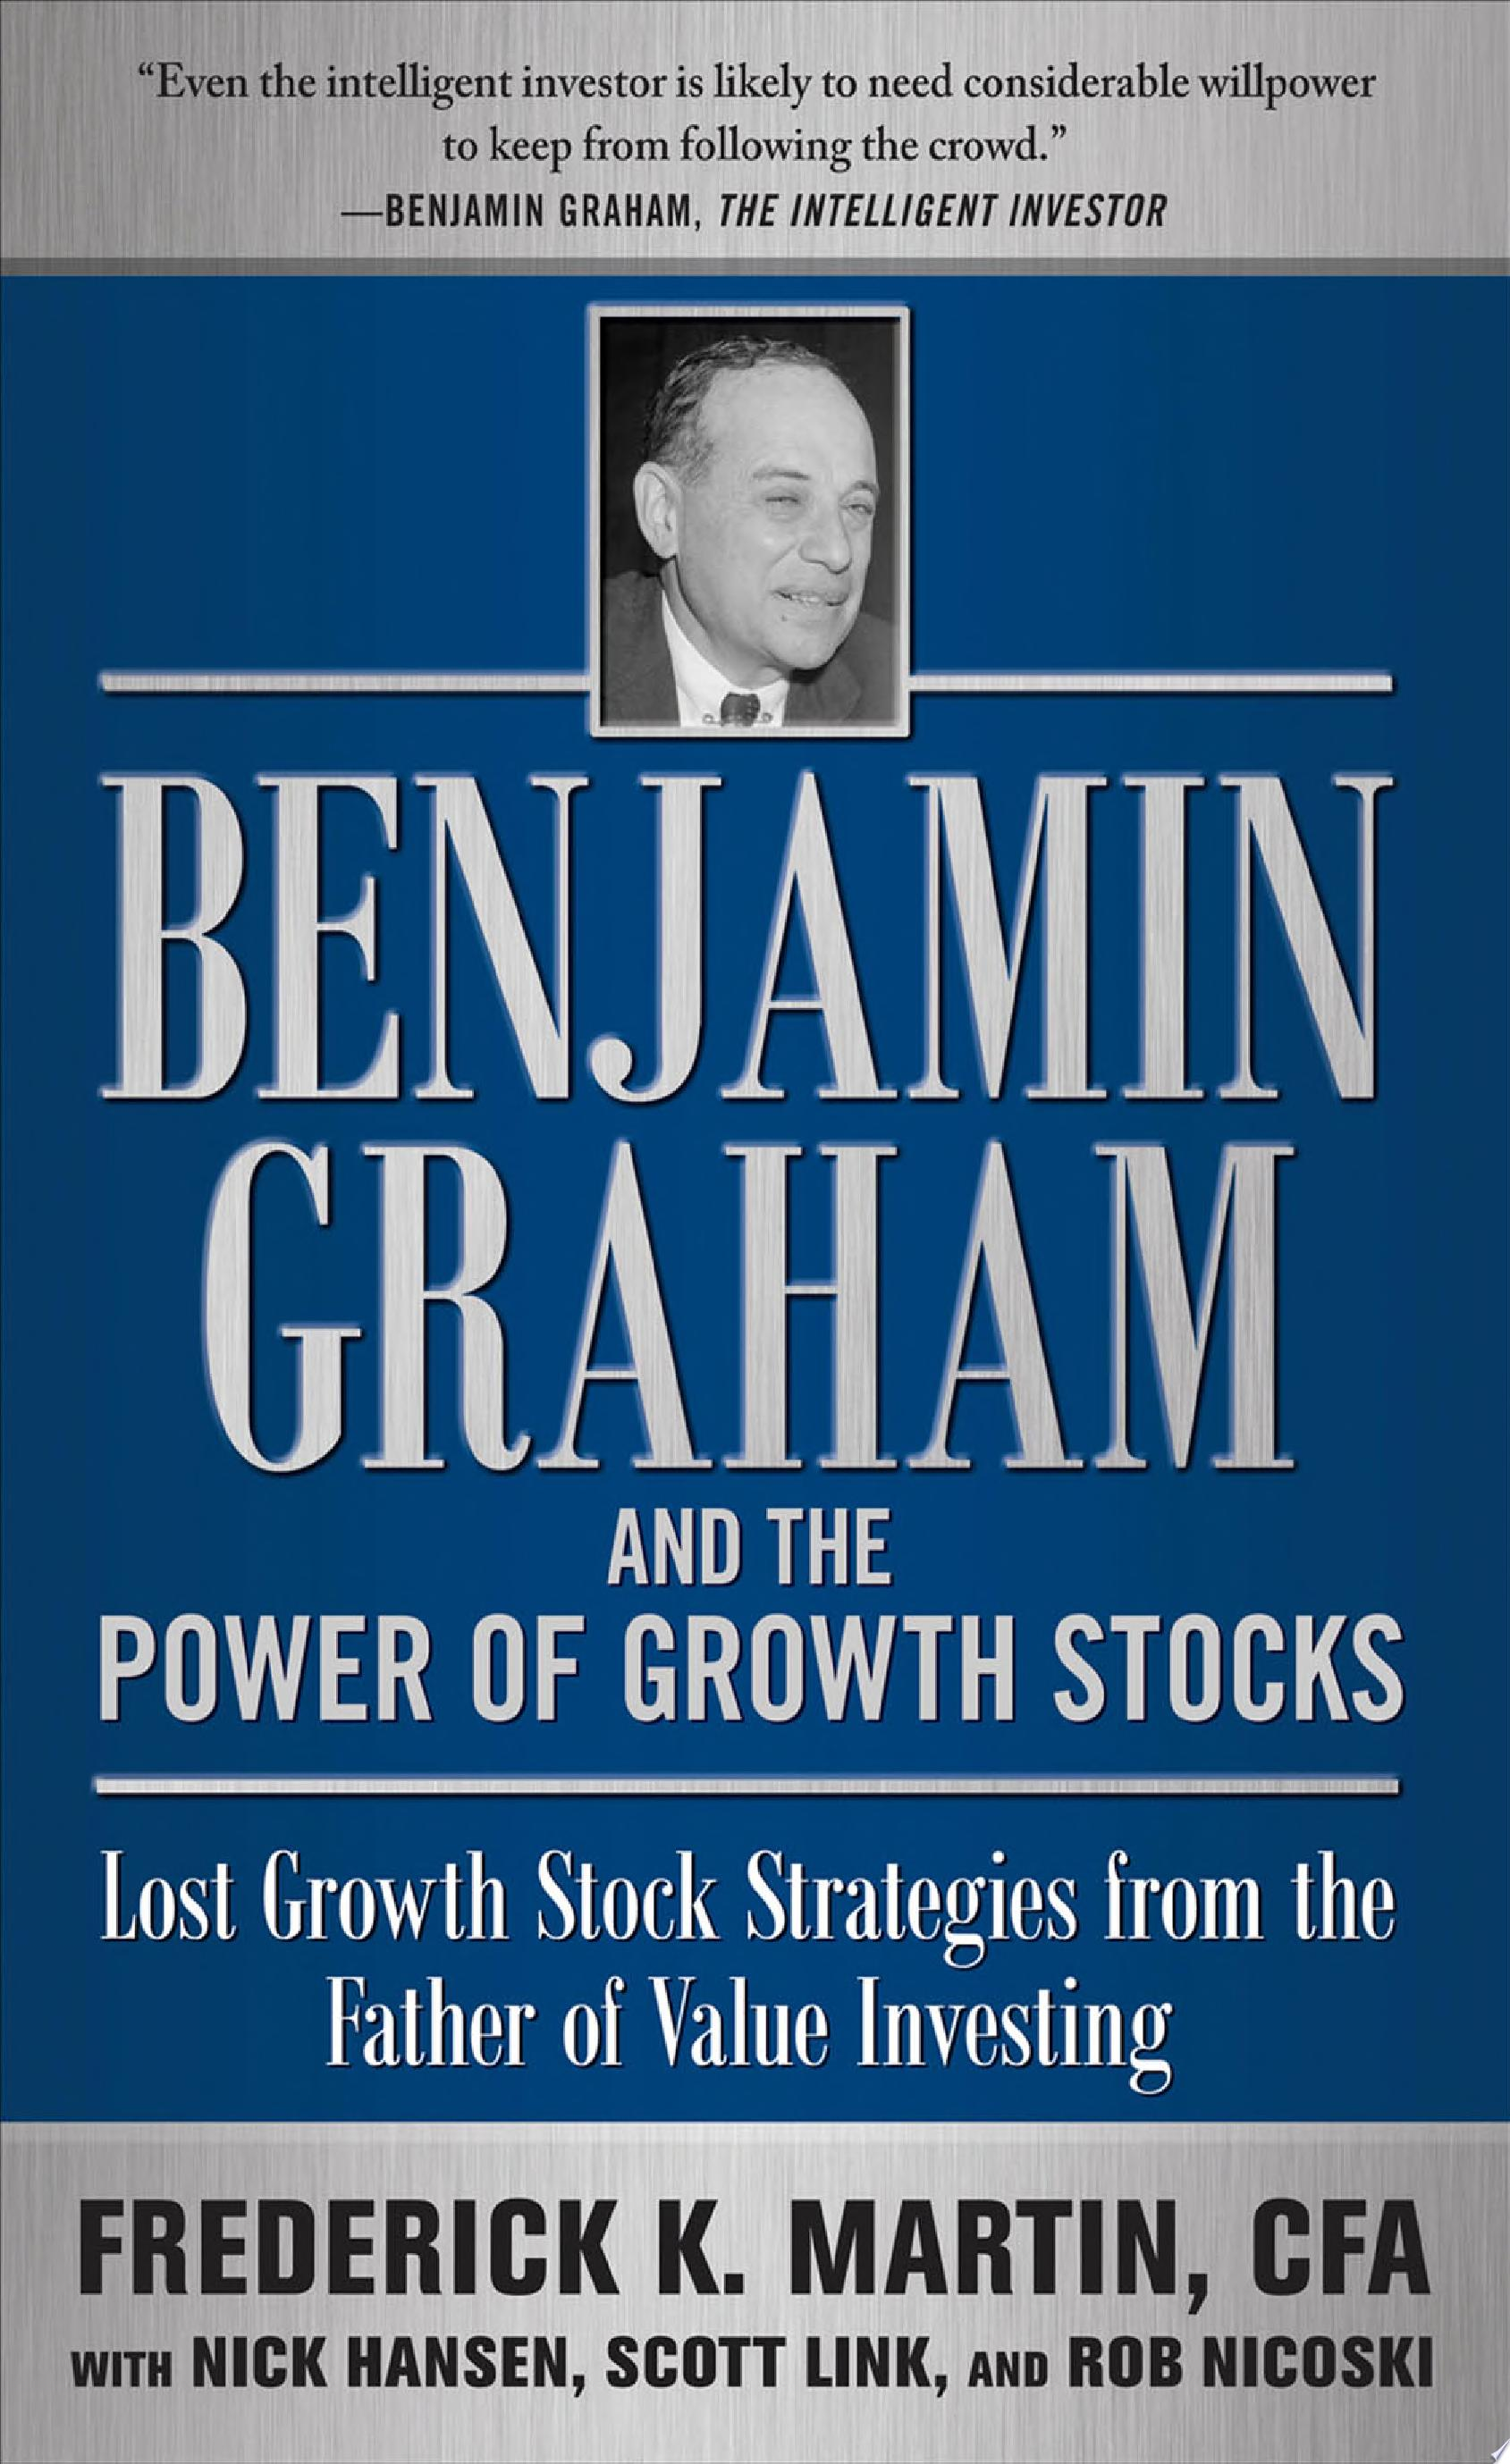 Benjamin Graham and the Power of Growth Stocks  Lost Growth Stock Strategies from the Father of Value Investing